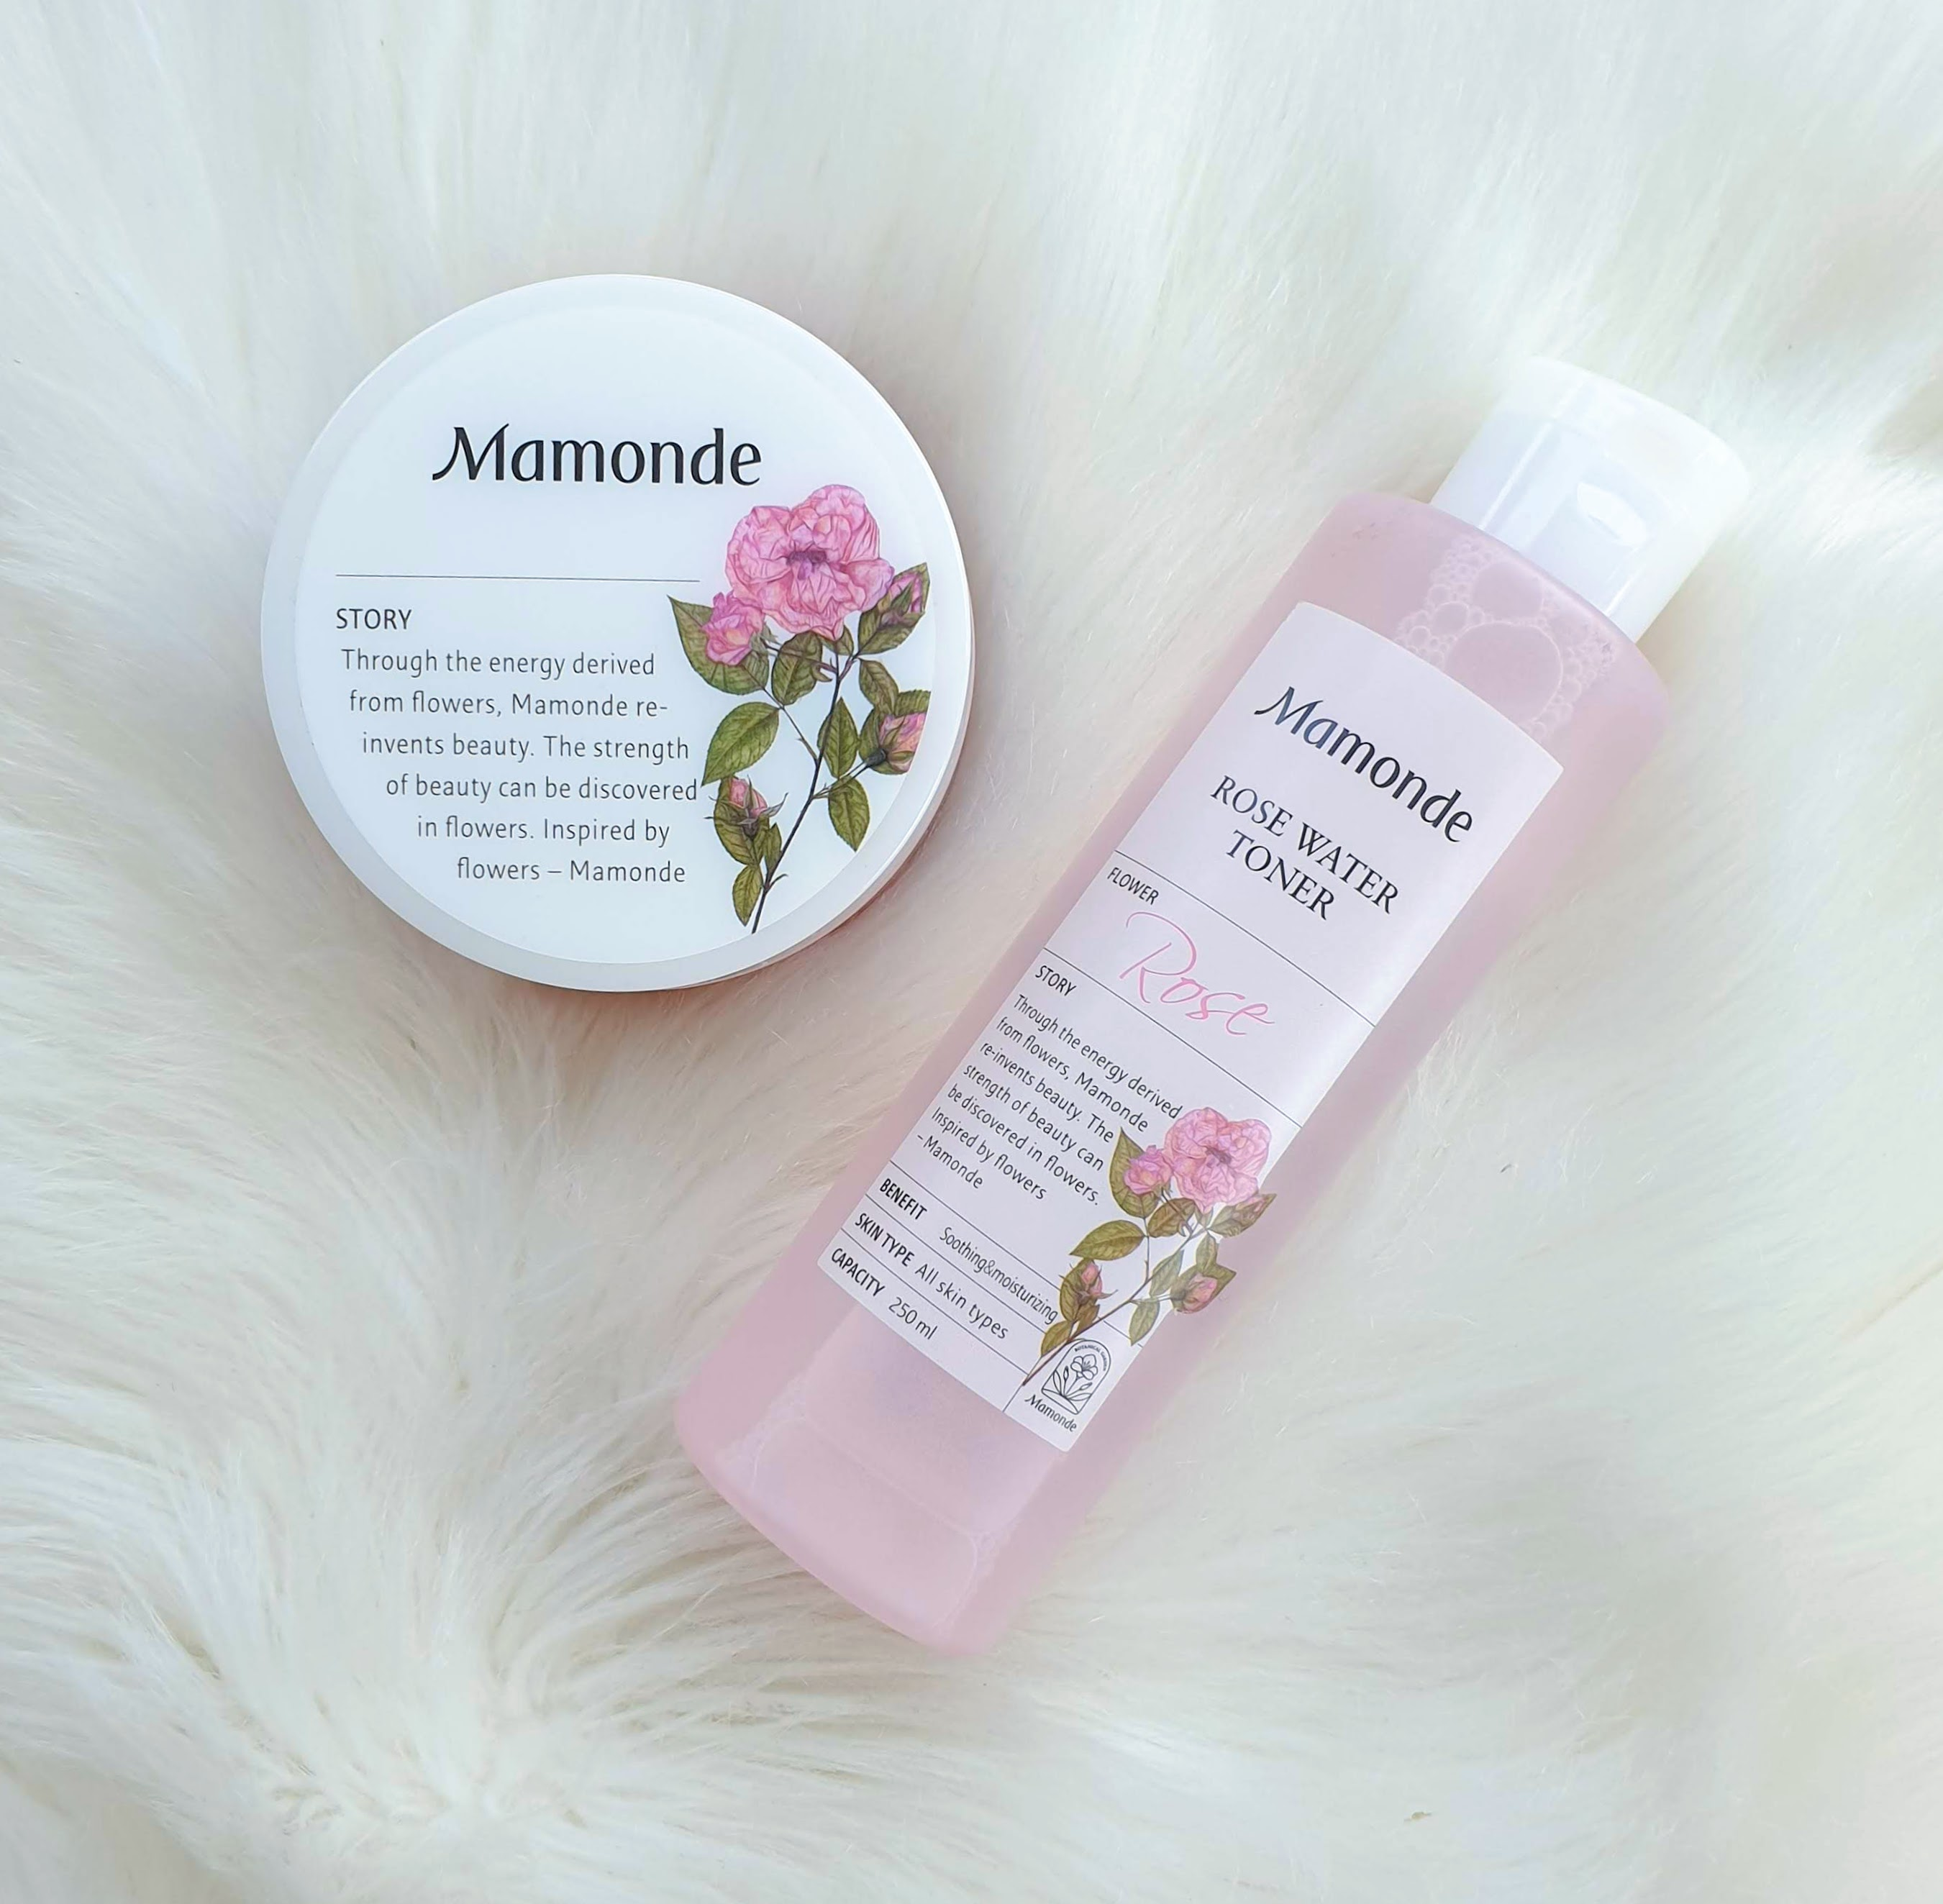 Mamonde Rose Water Toner & Toner Pad | Review